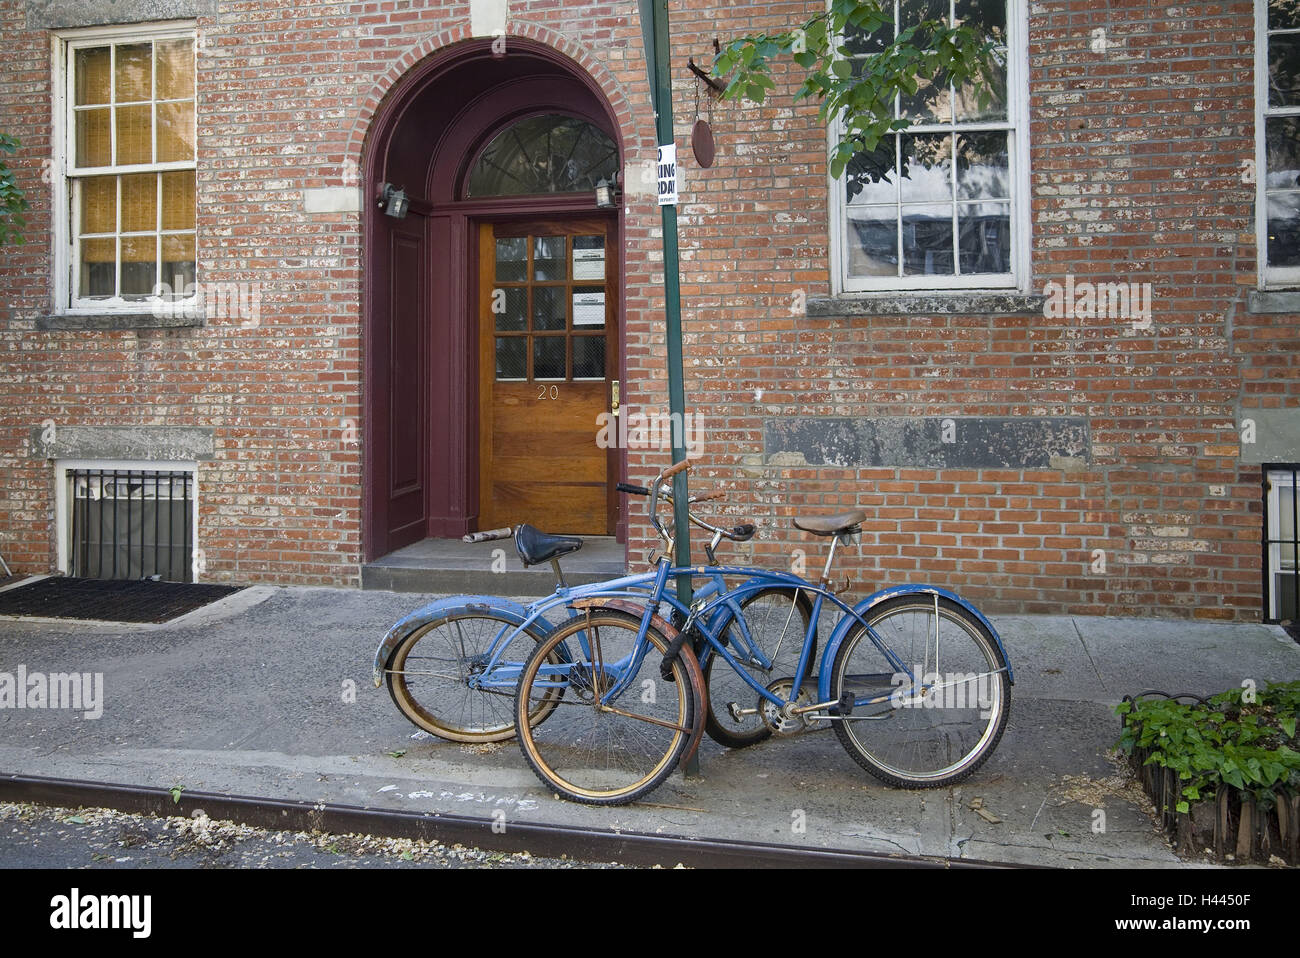 Brick building, road sign, bicycles, two, leant, North America, the USA, SoHo, part town, wheels, blue, finished, - Stock Image